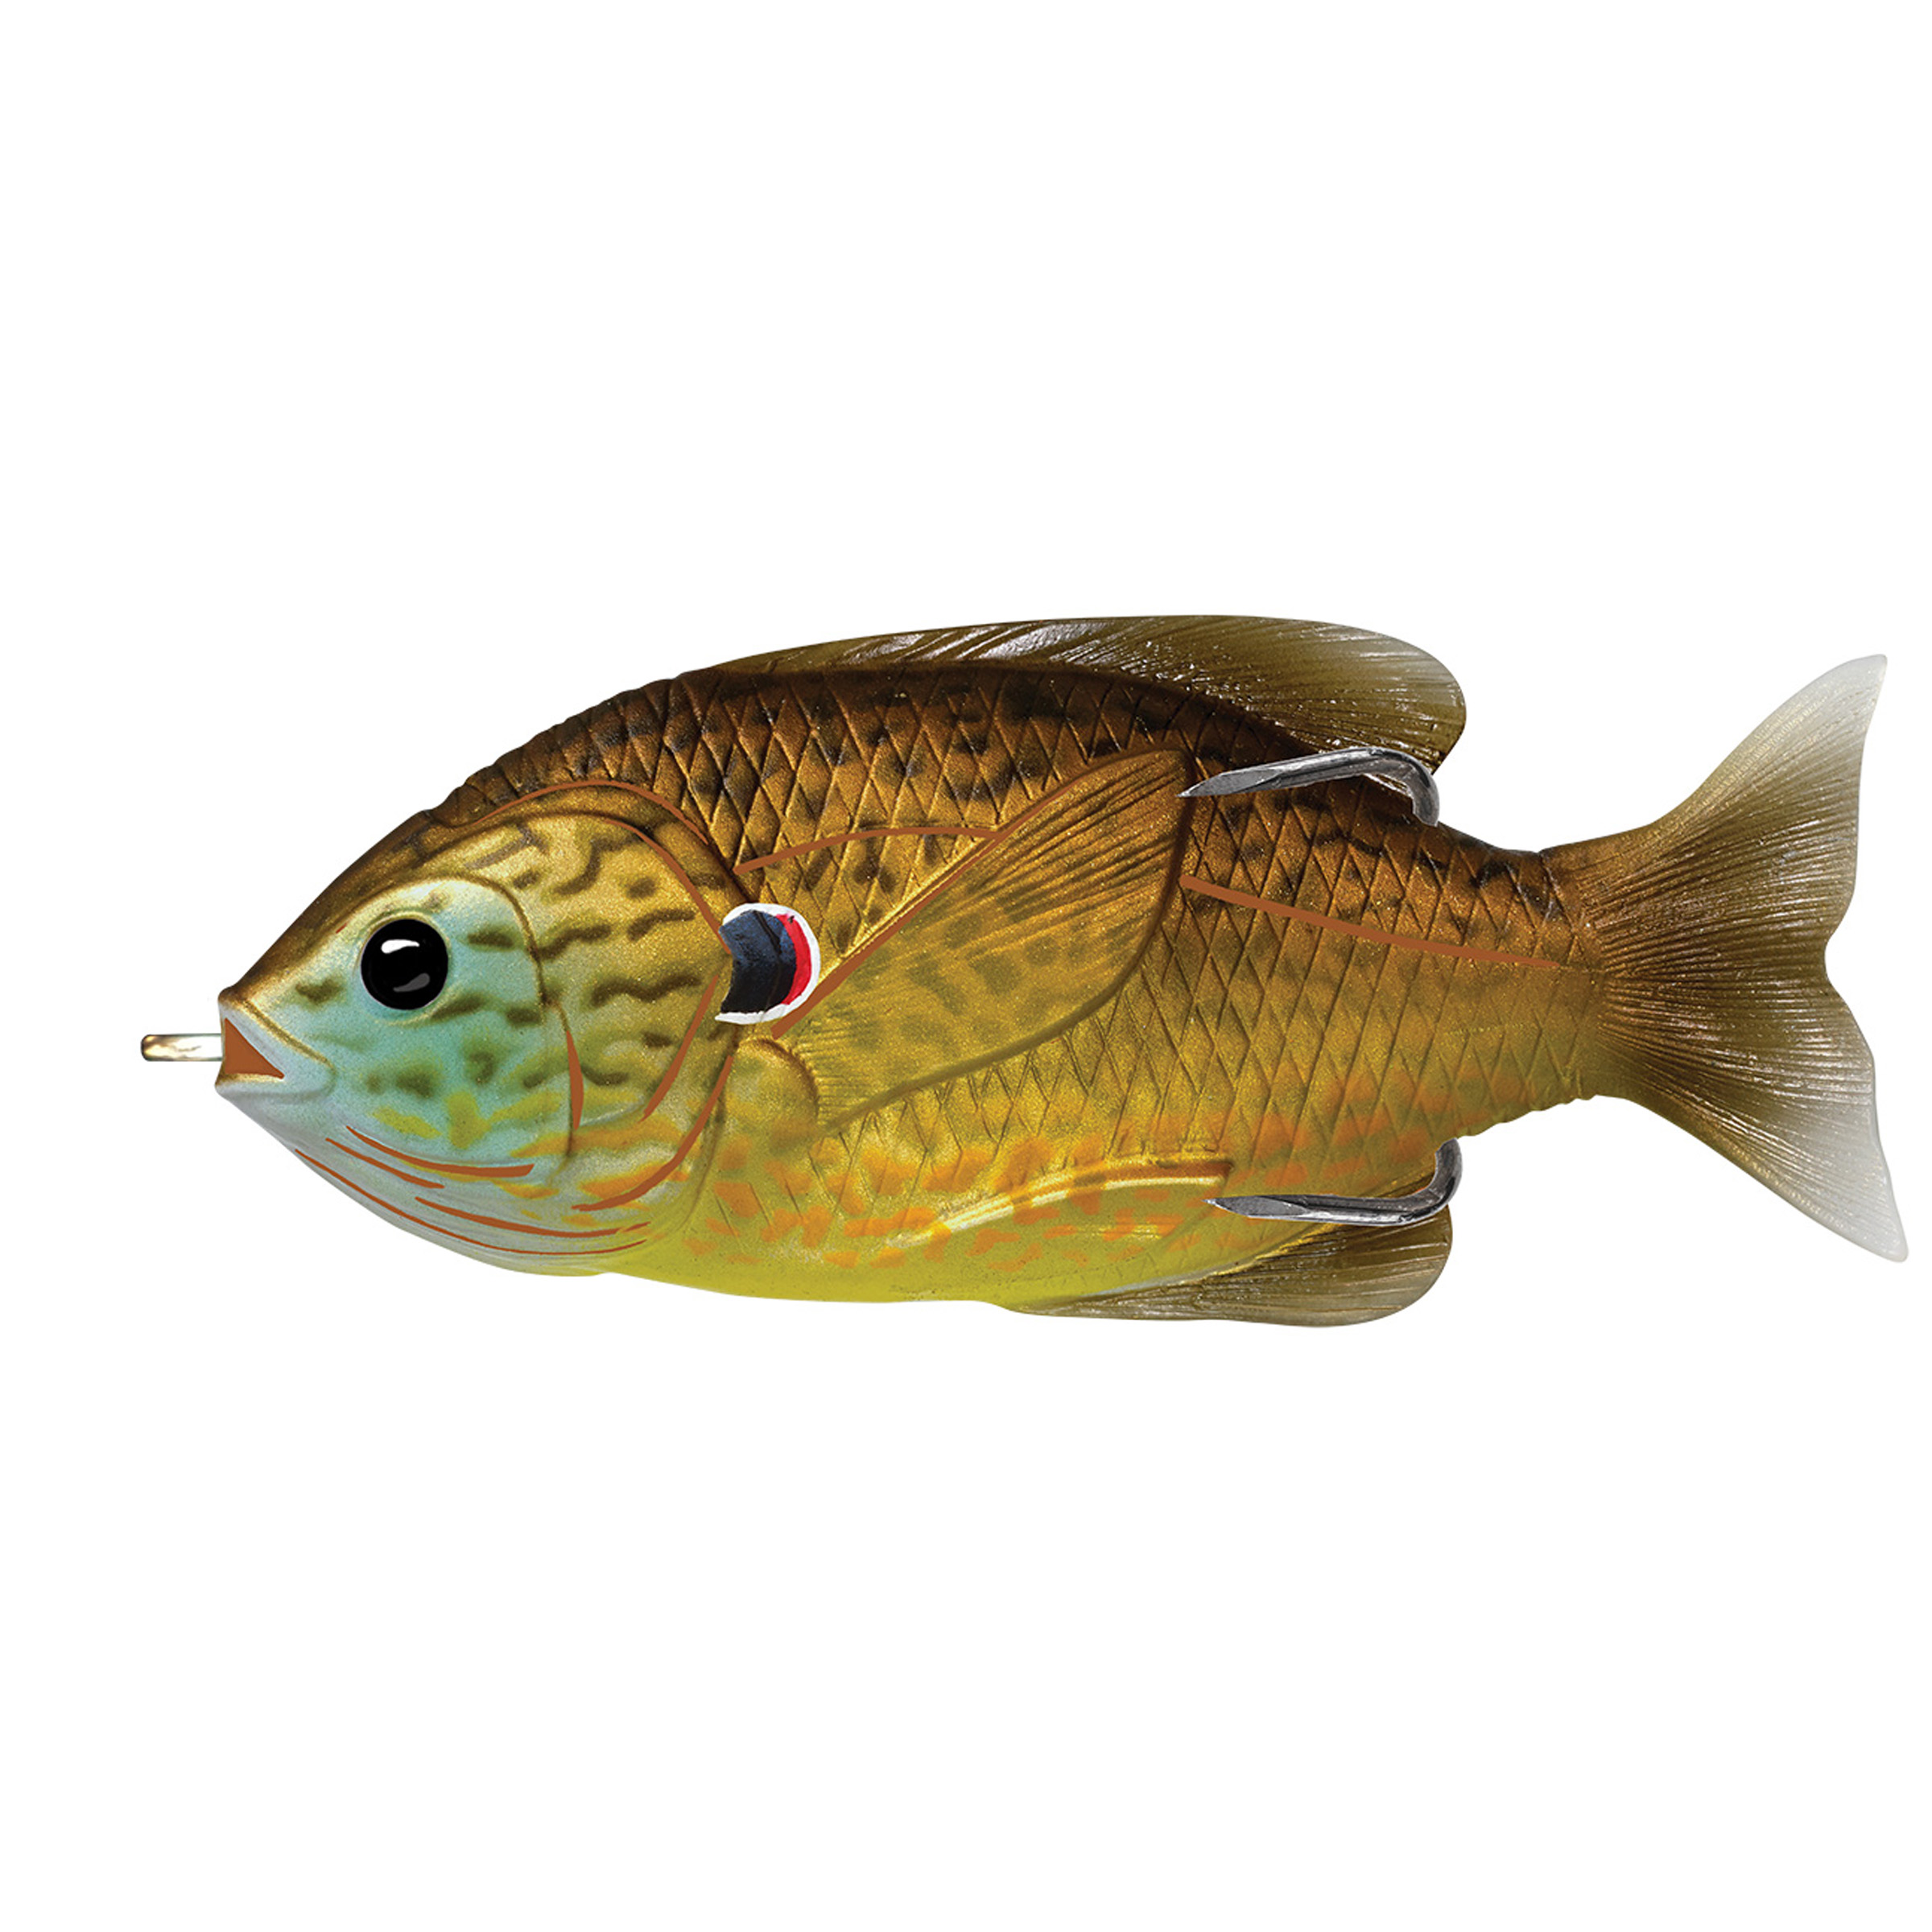 "LiveTarget Sunfish Hollow Body Freshwater, 3"", #3/0 Hook. Topwater Depth, Copper Pumpkinseed"